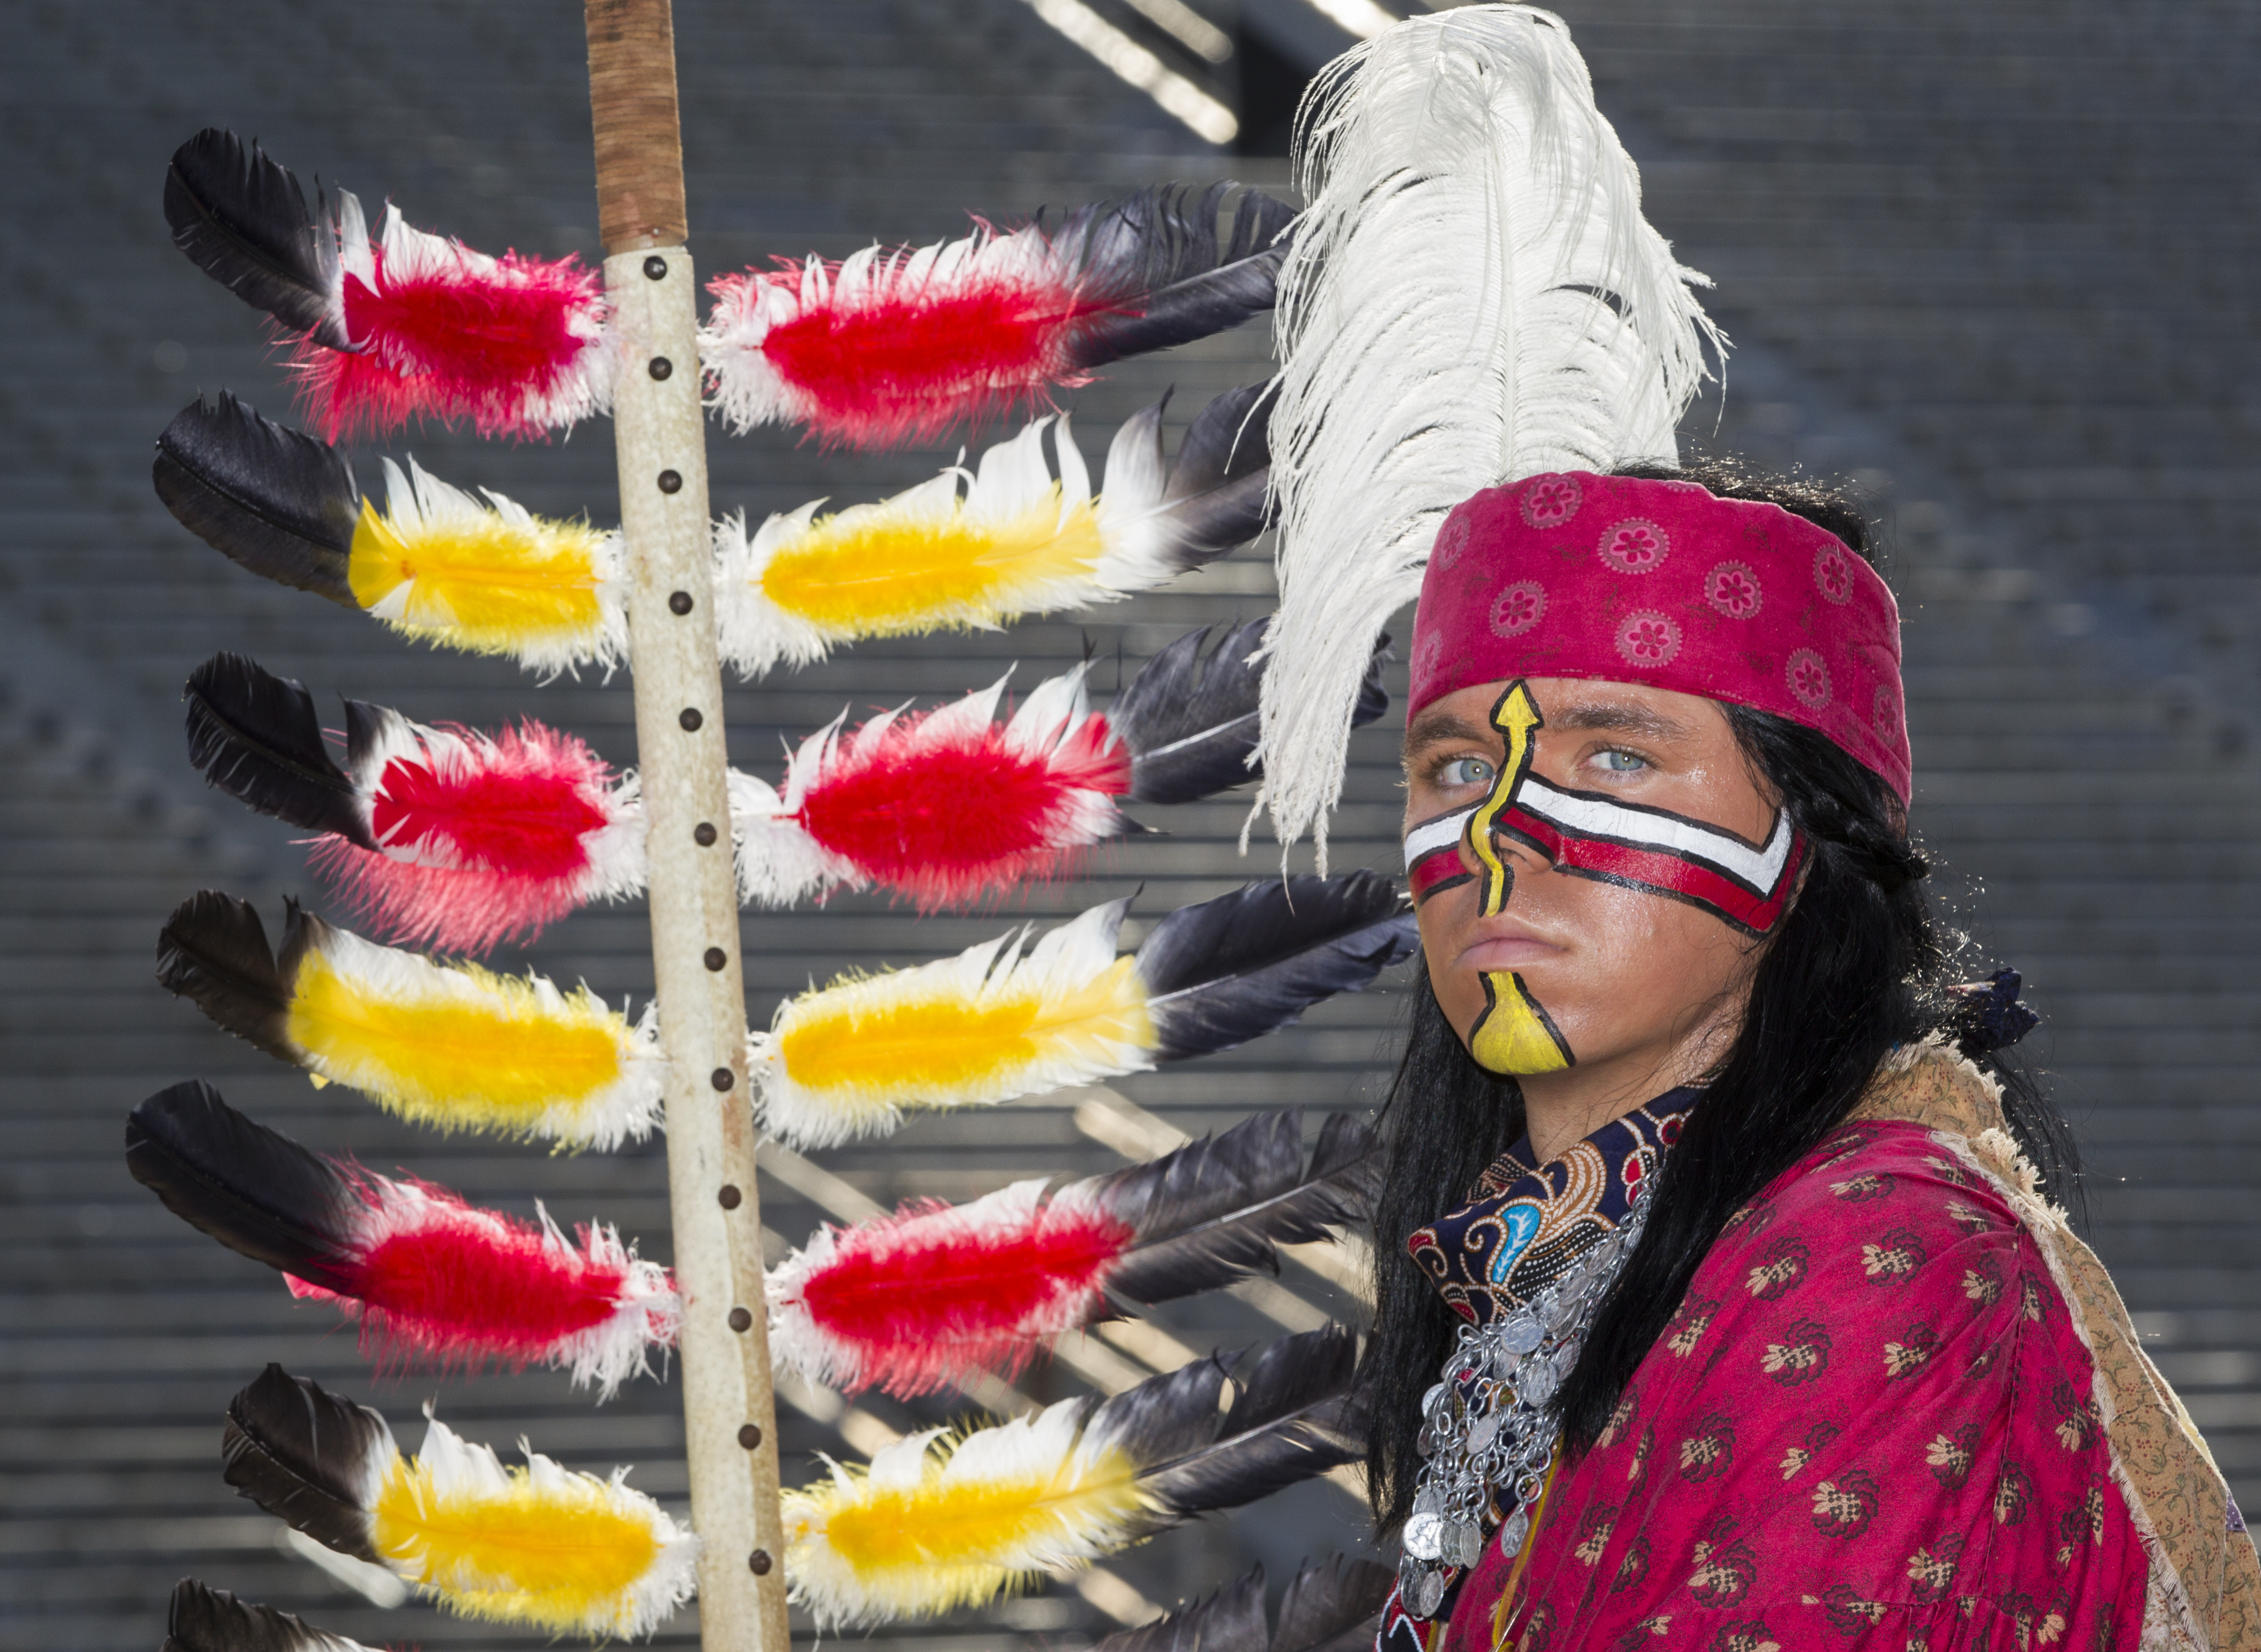 FILE - In this Sunday, Aug. 9, 2015 file photo, Florida State mascot Osceola attends NCAA college football media day in Tallahassee, Fla. Florida State Universitys Student Government Association has passed a resolution discouraging the wearing of Native A